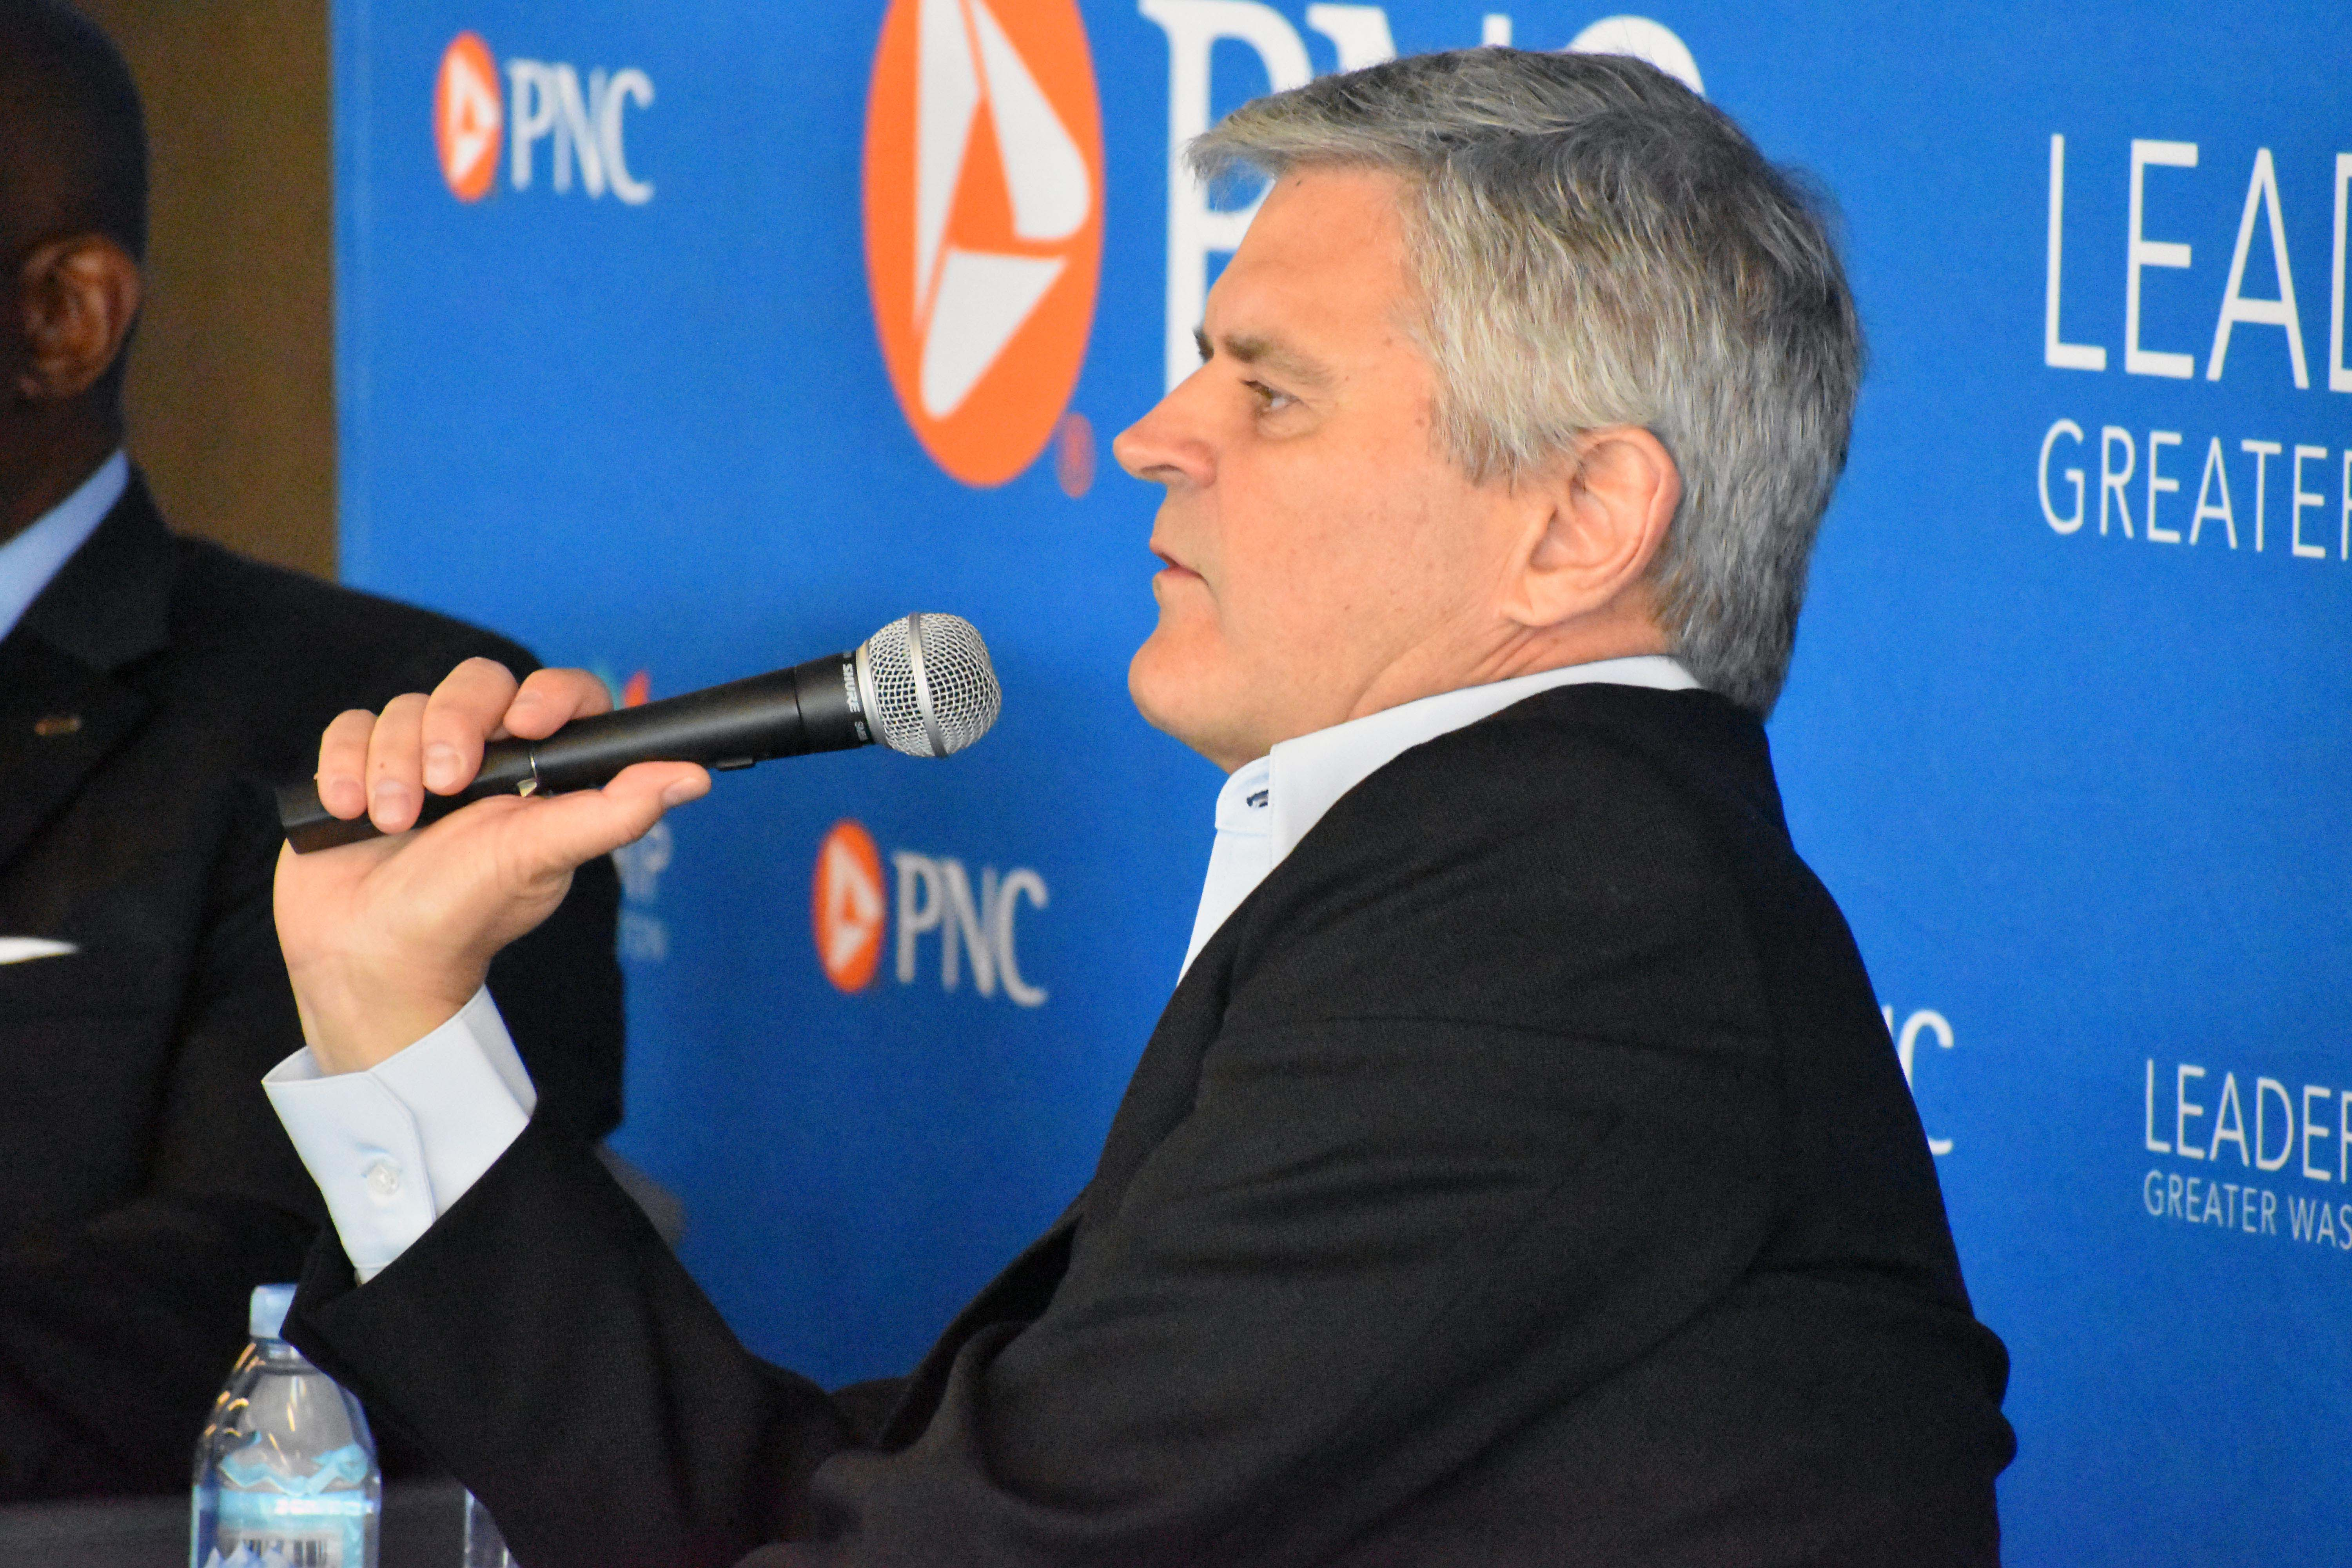 Lessons in Leadership featuring Steve Case